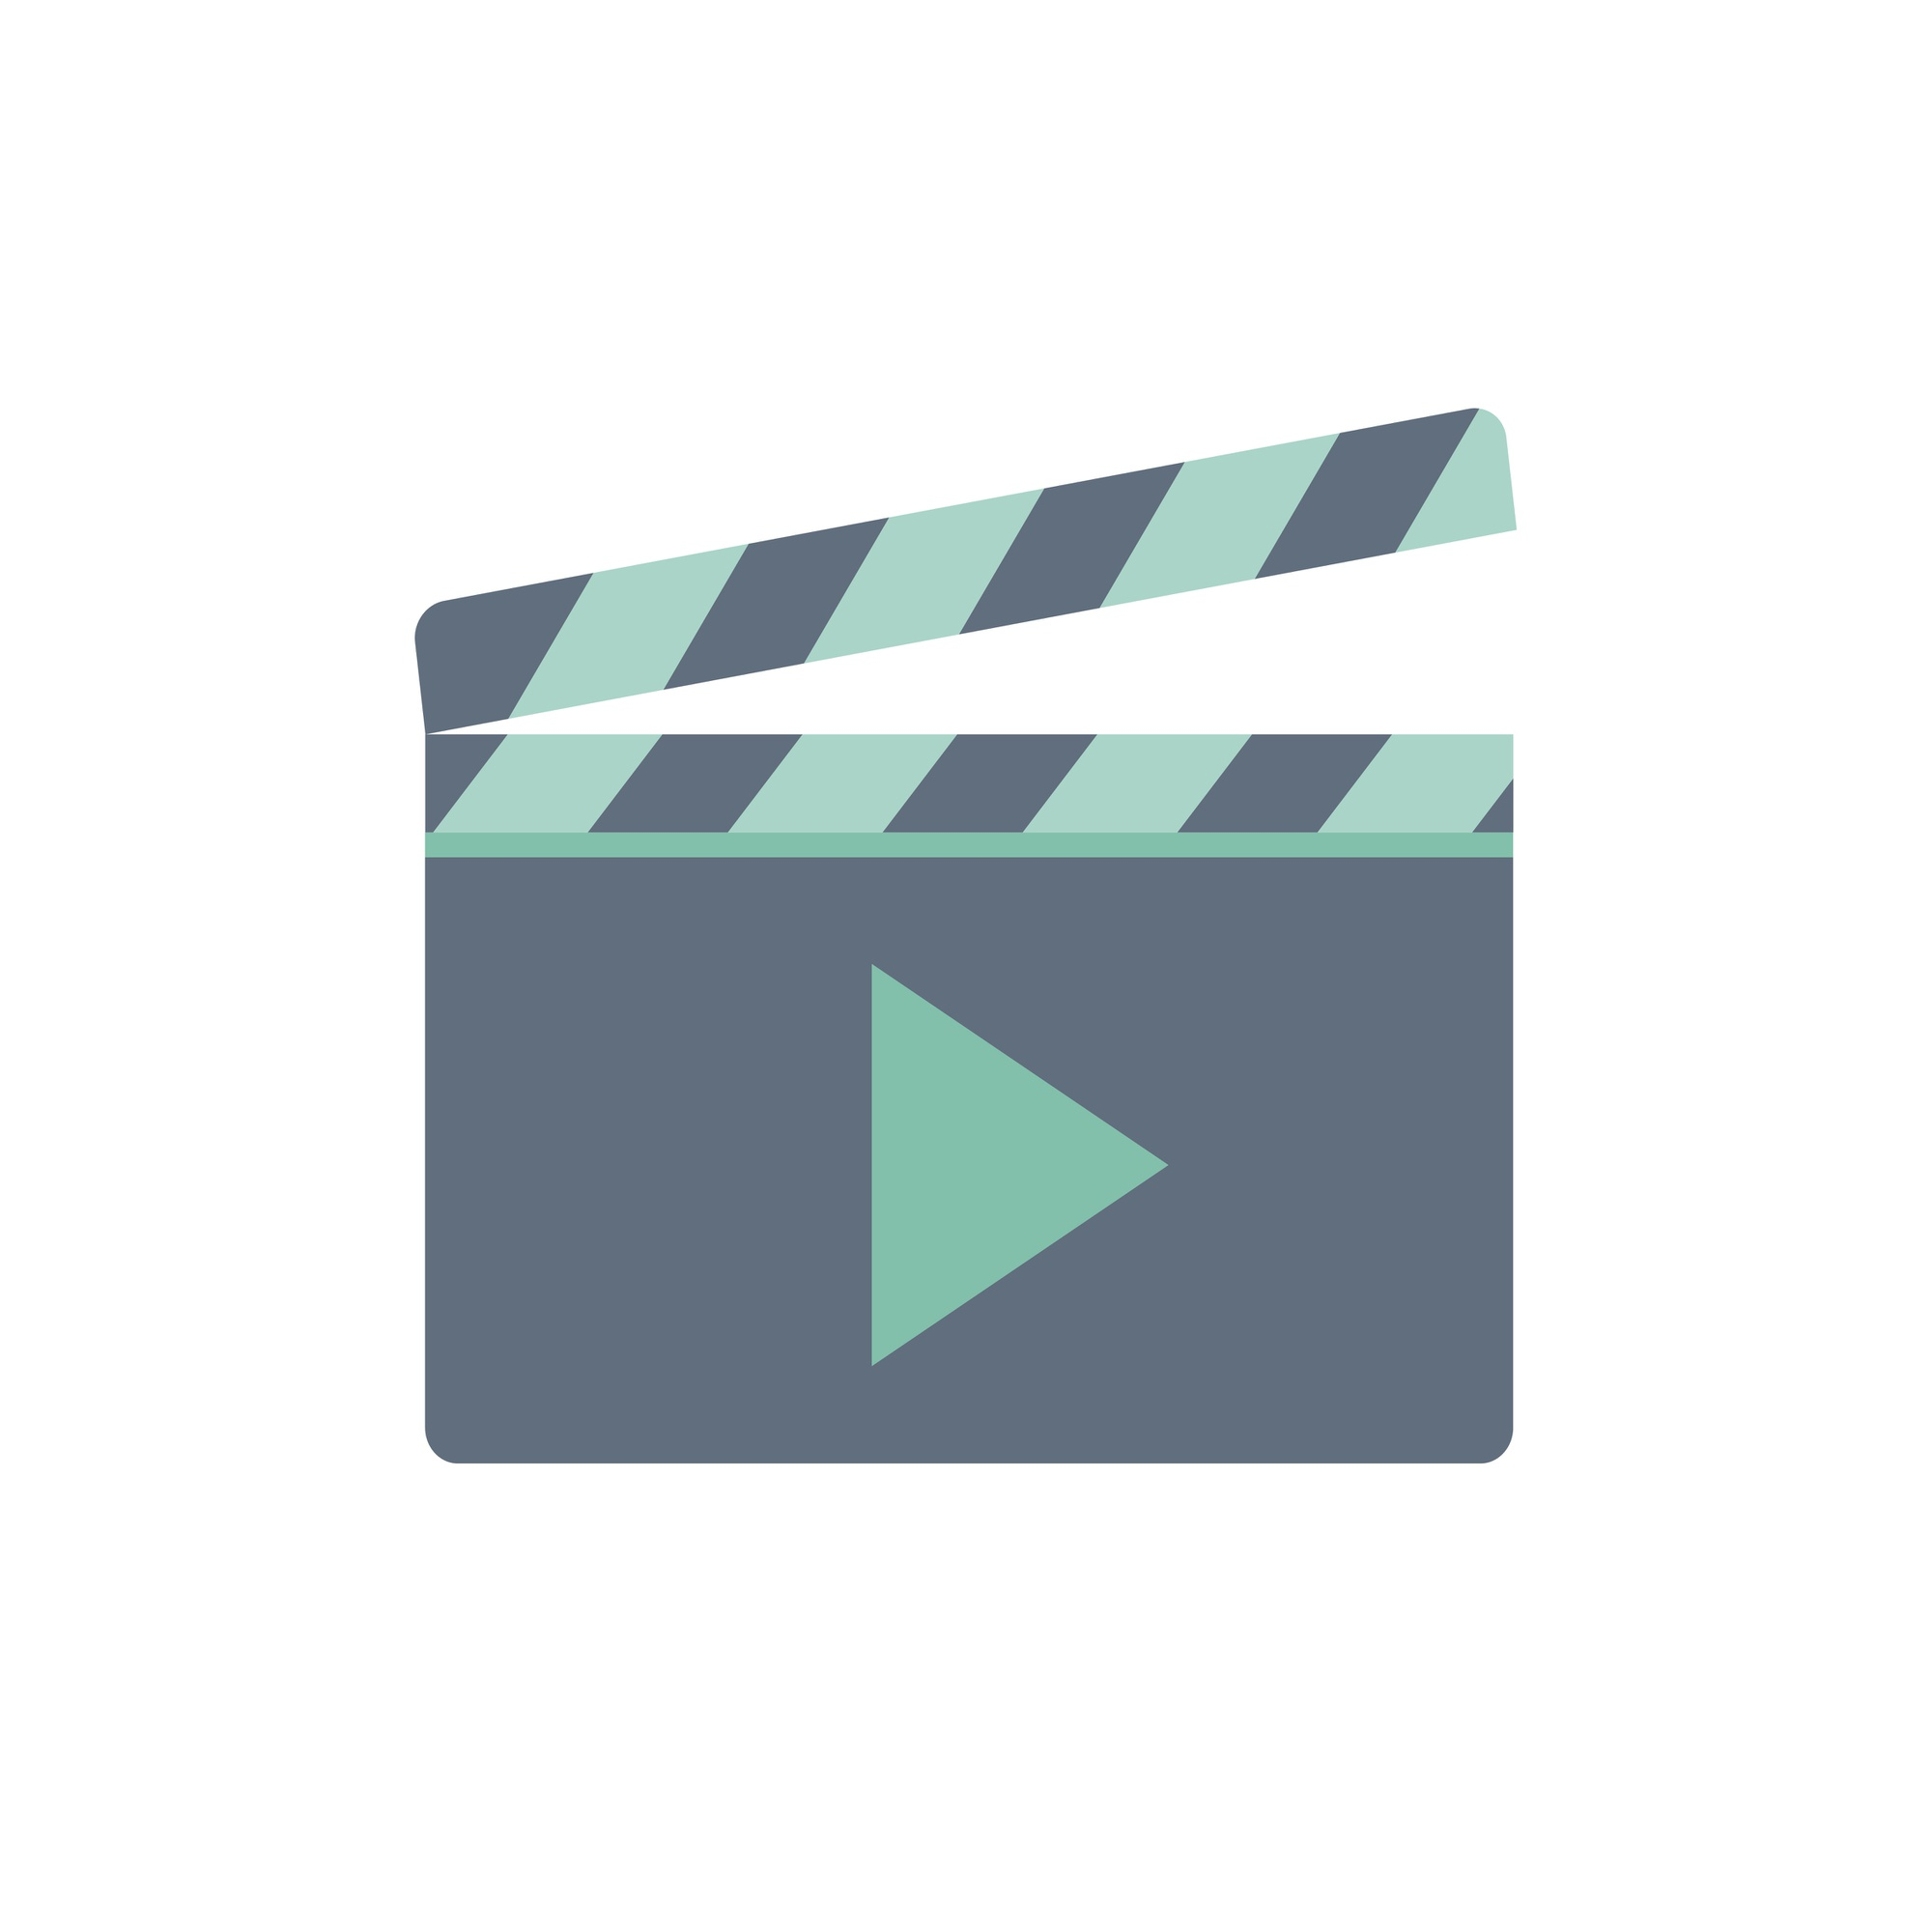 Illustration of play button